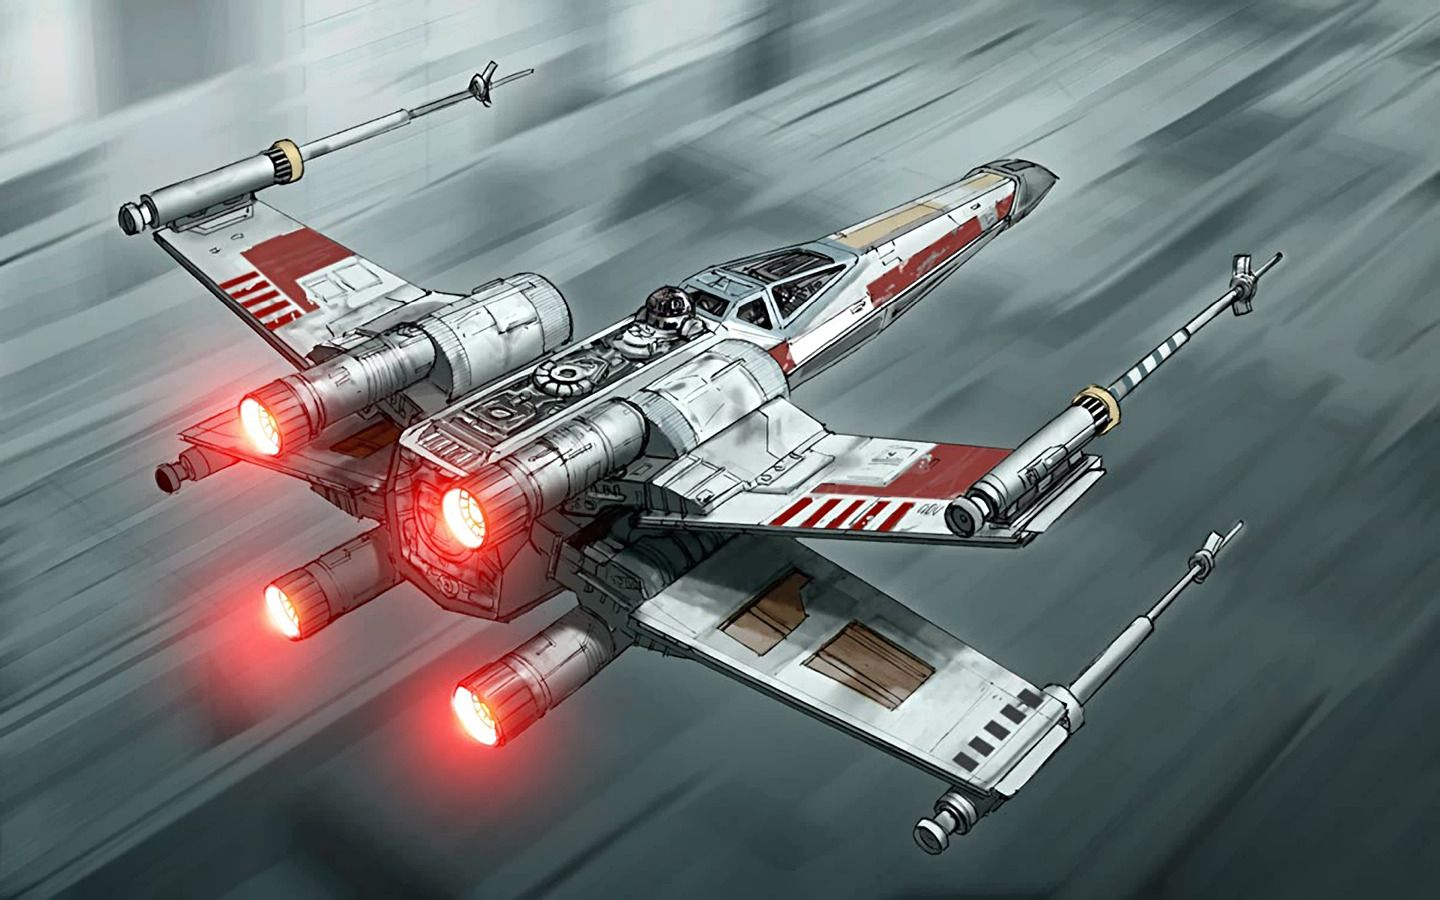 Download Hd Wallpapers Of 28337 Fantasy Art Star Wars X Wing Free Download High Quality And Widescre Star Wars Painting Star Wars Wallpaper X Wing Wallpaper